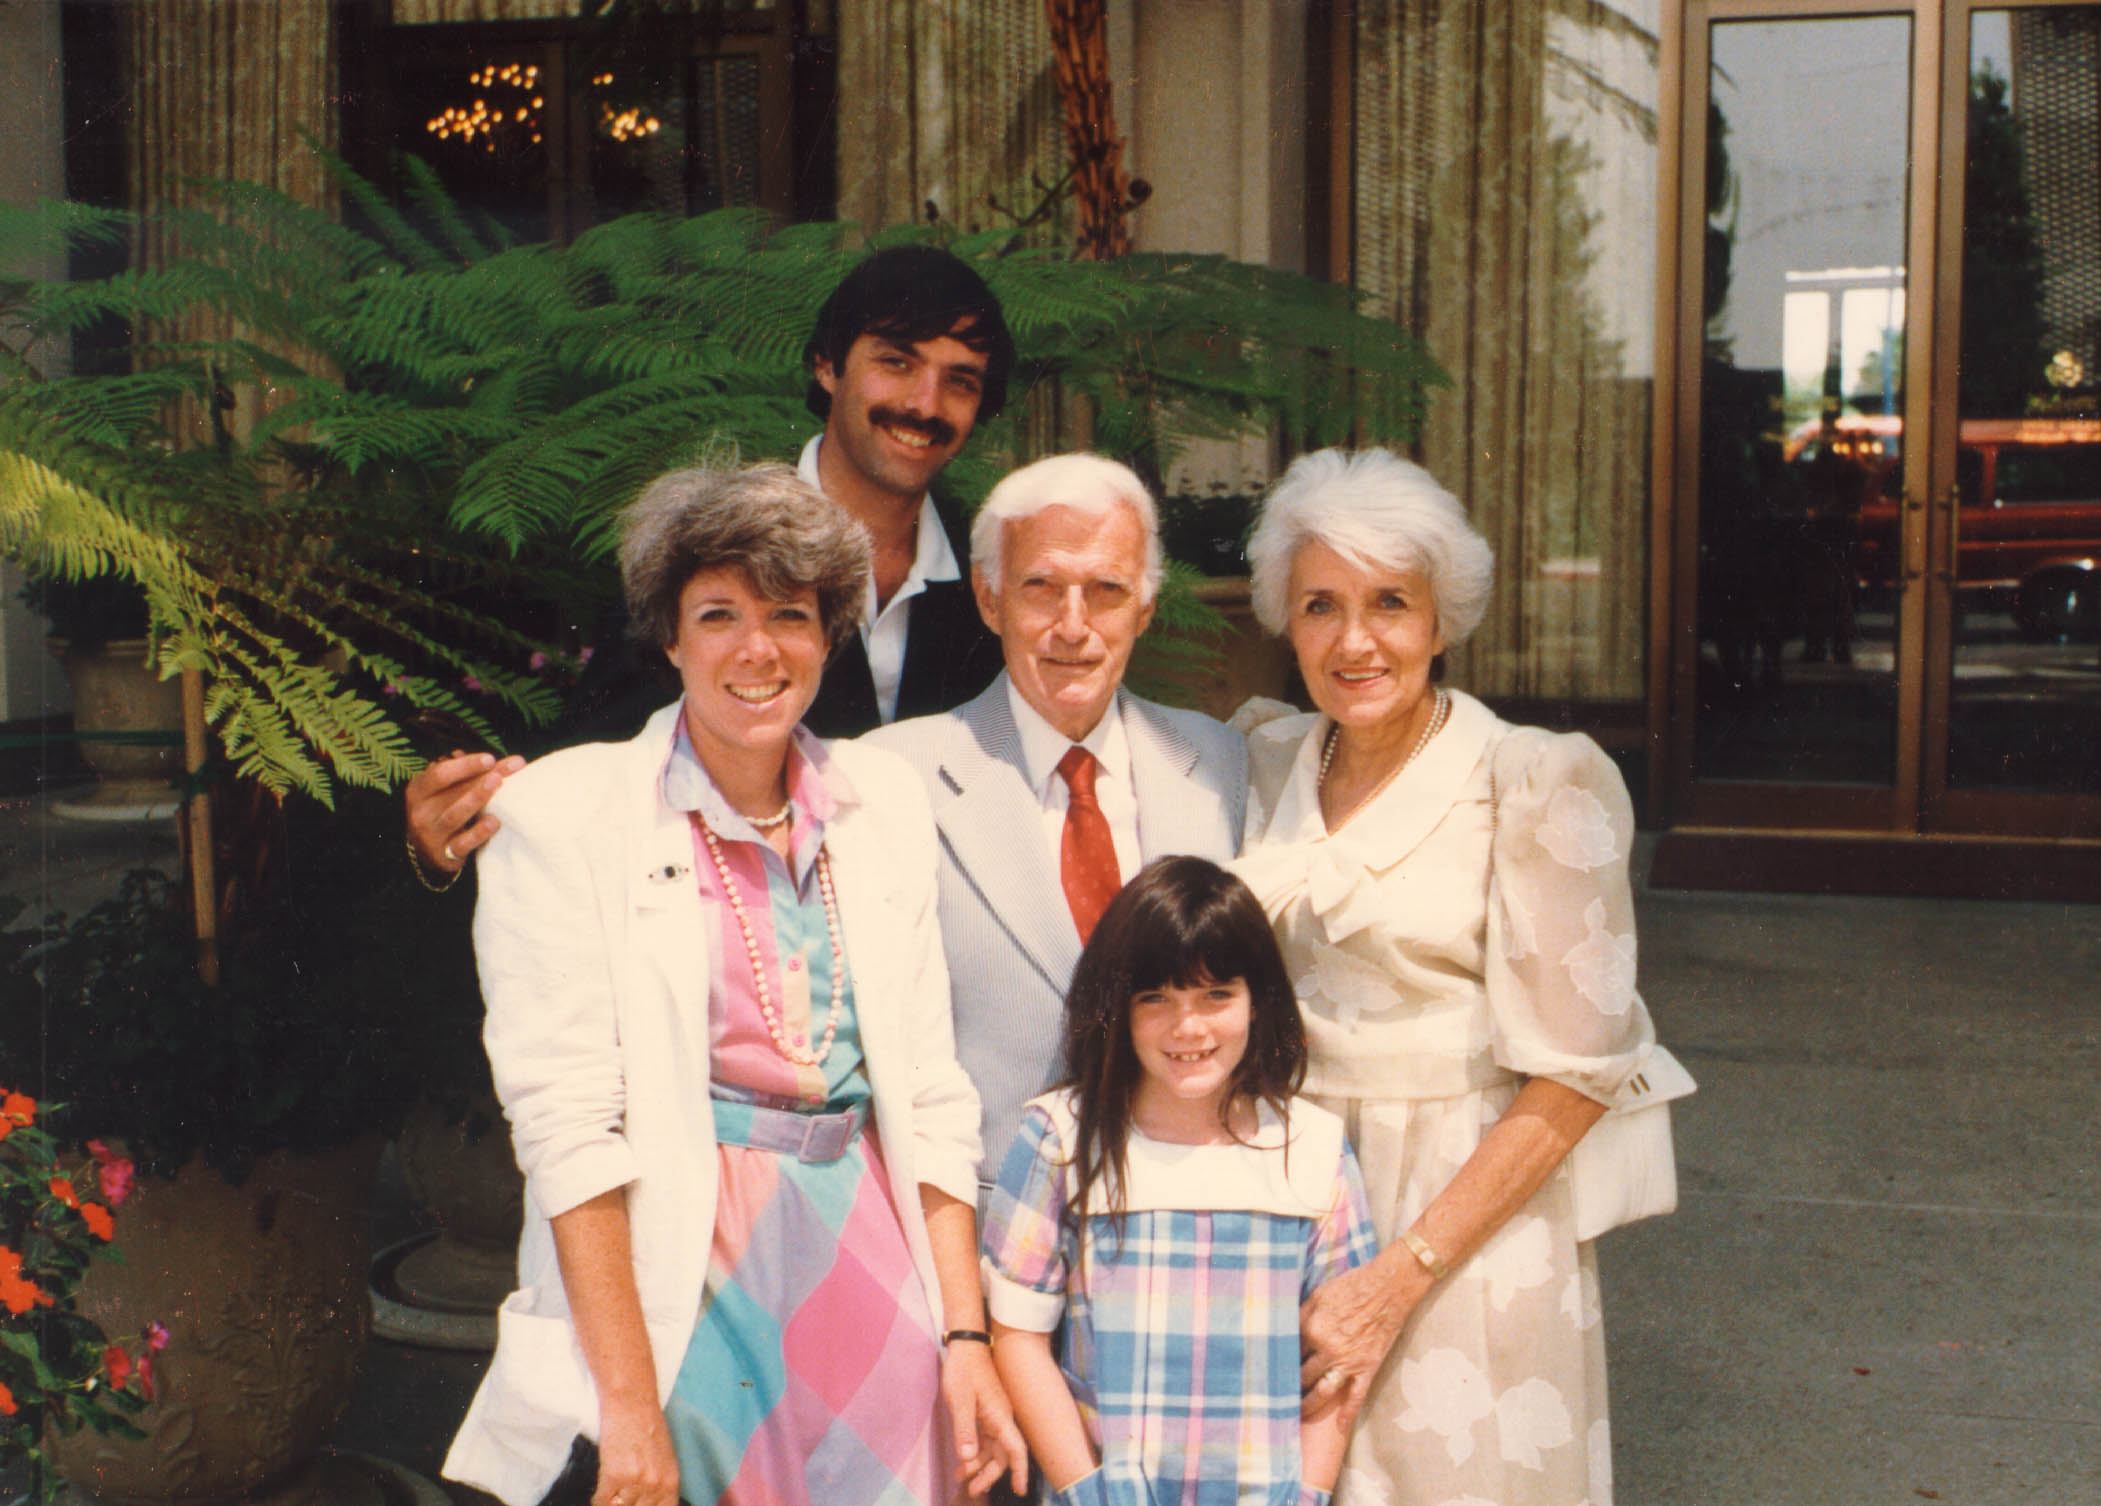 Blanka and Harry with their daughter Shelly, son-in-law, and granddaughter Alexis Danielle. San Diego, California.